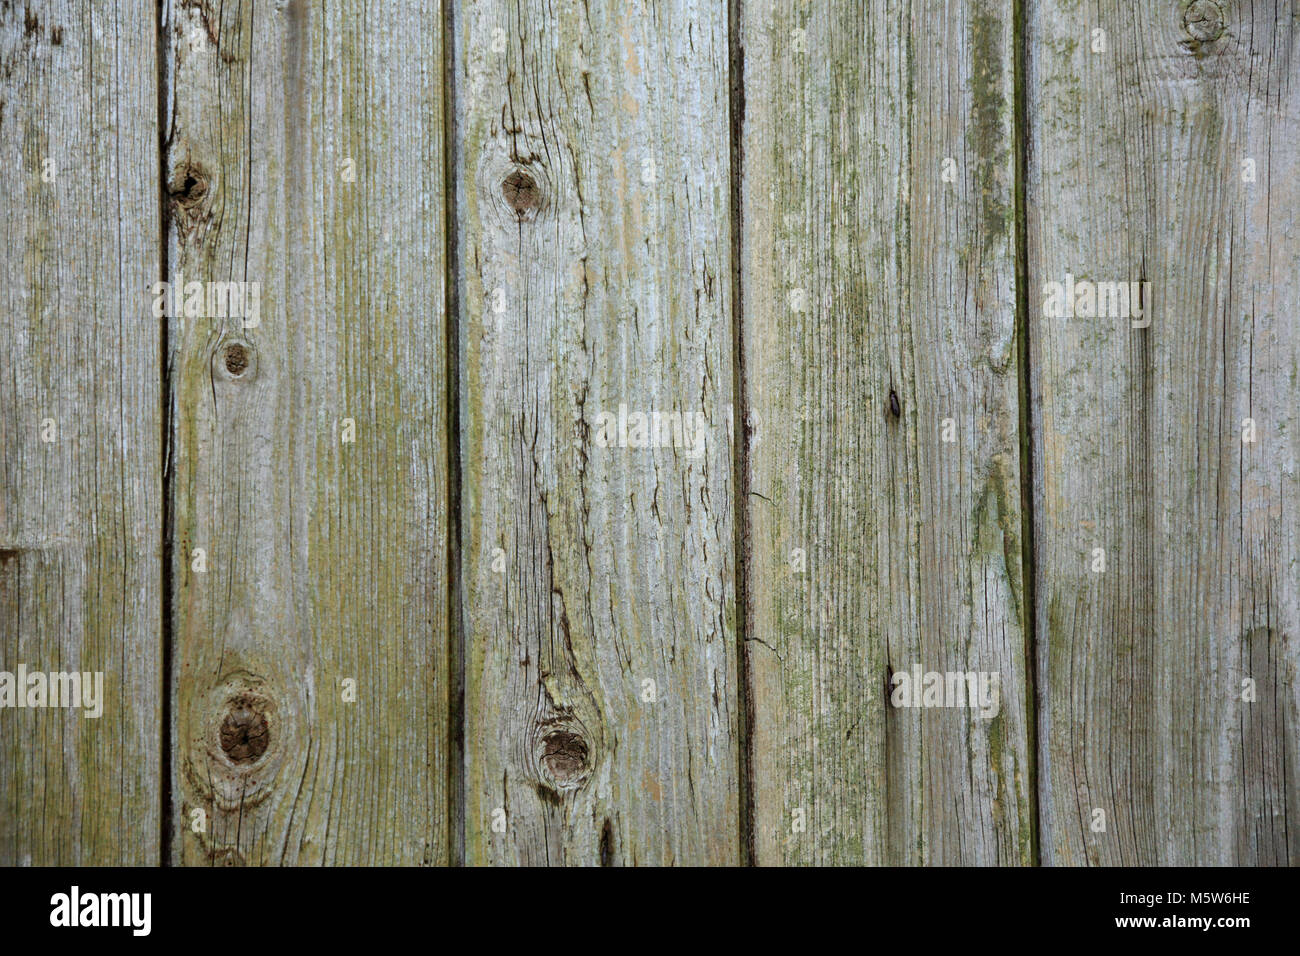 Unprotected weathered wood - Stock Image